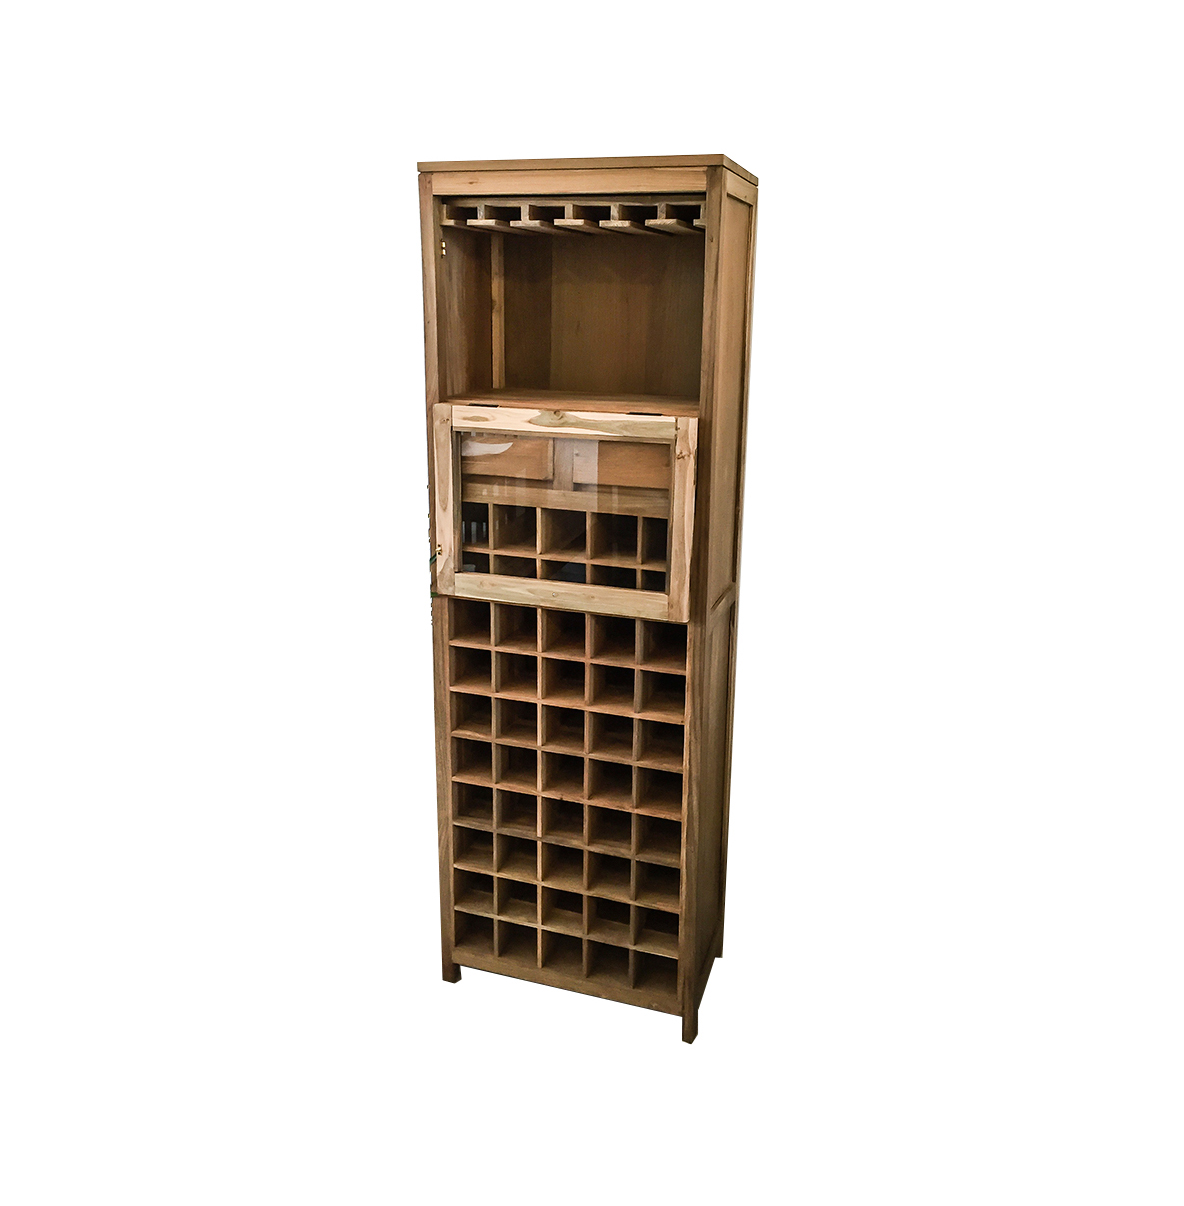 Wood kitchen table with wine rack marengo wine Wine rack designs wood